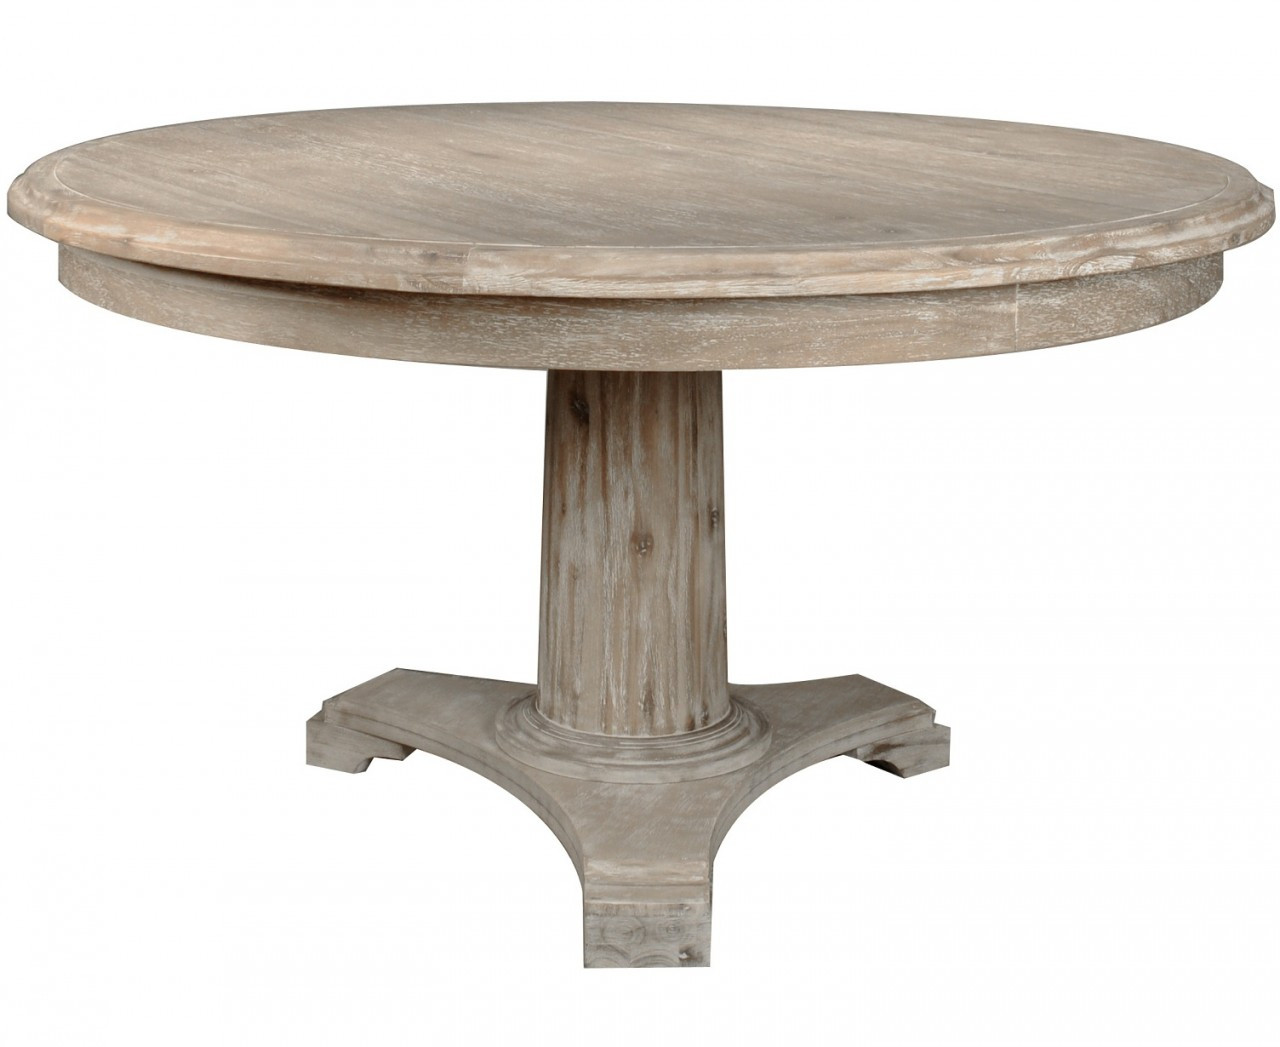 Belmont Round Dining Table 54 Round Column Pedestal Base Tables Zin